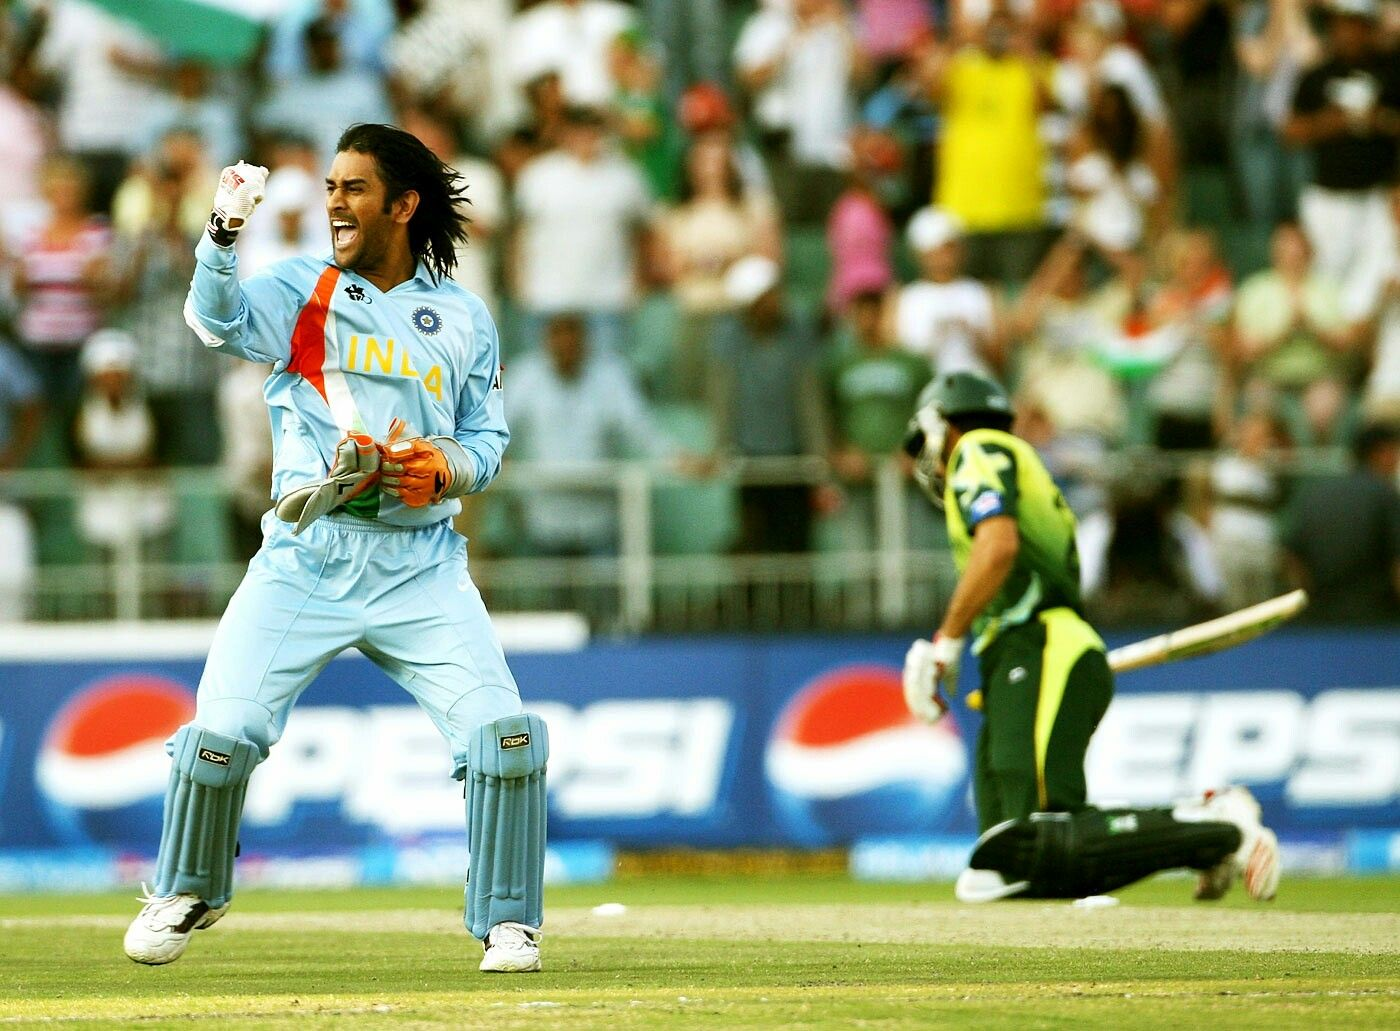 India Vs Pakistan T20 World Cup 2007 Full Match Highlights Final India Vs Pakistan Match Highlights World Cup